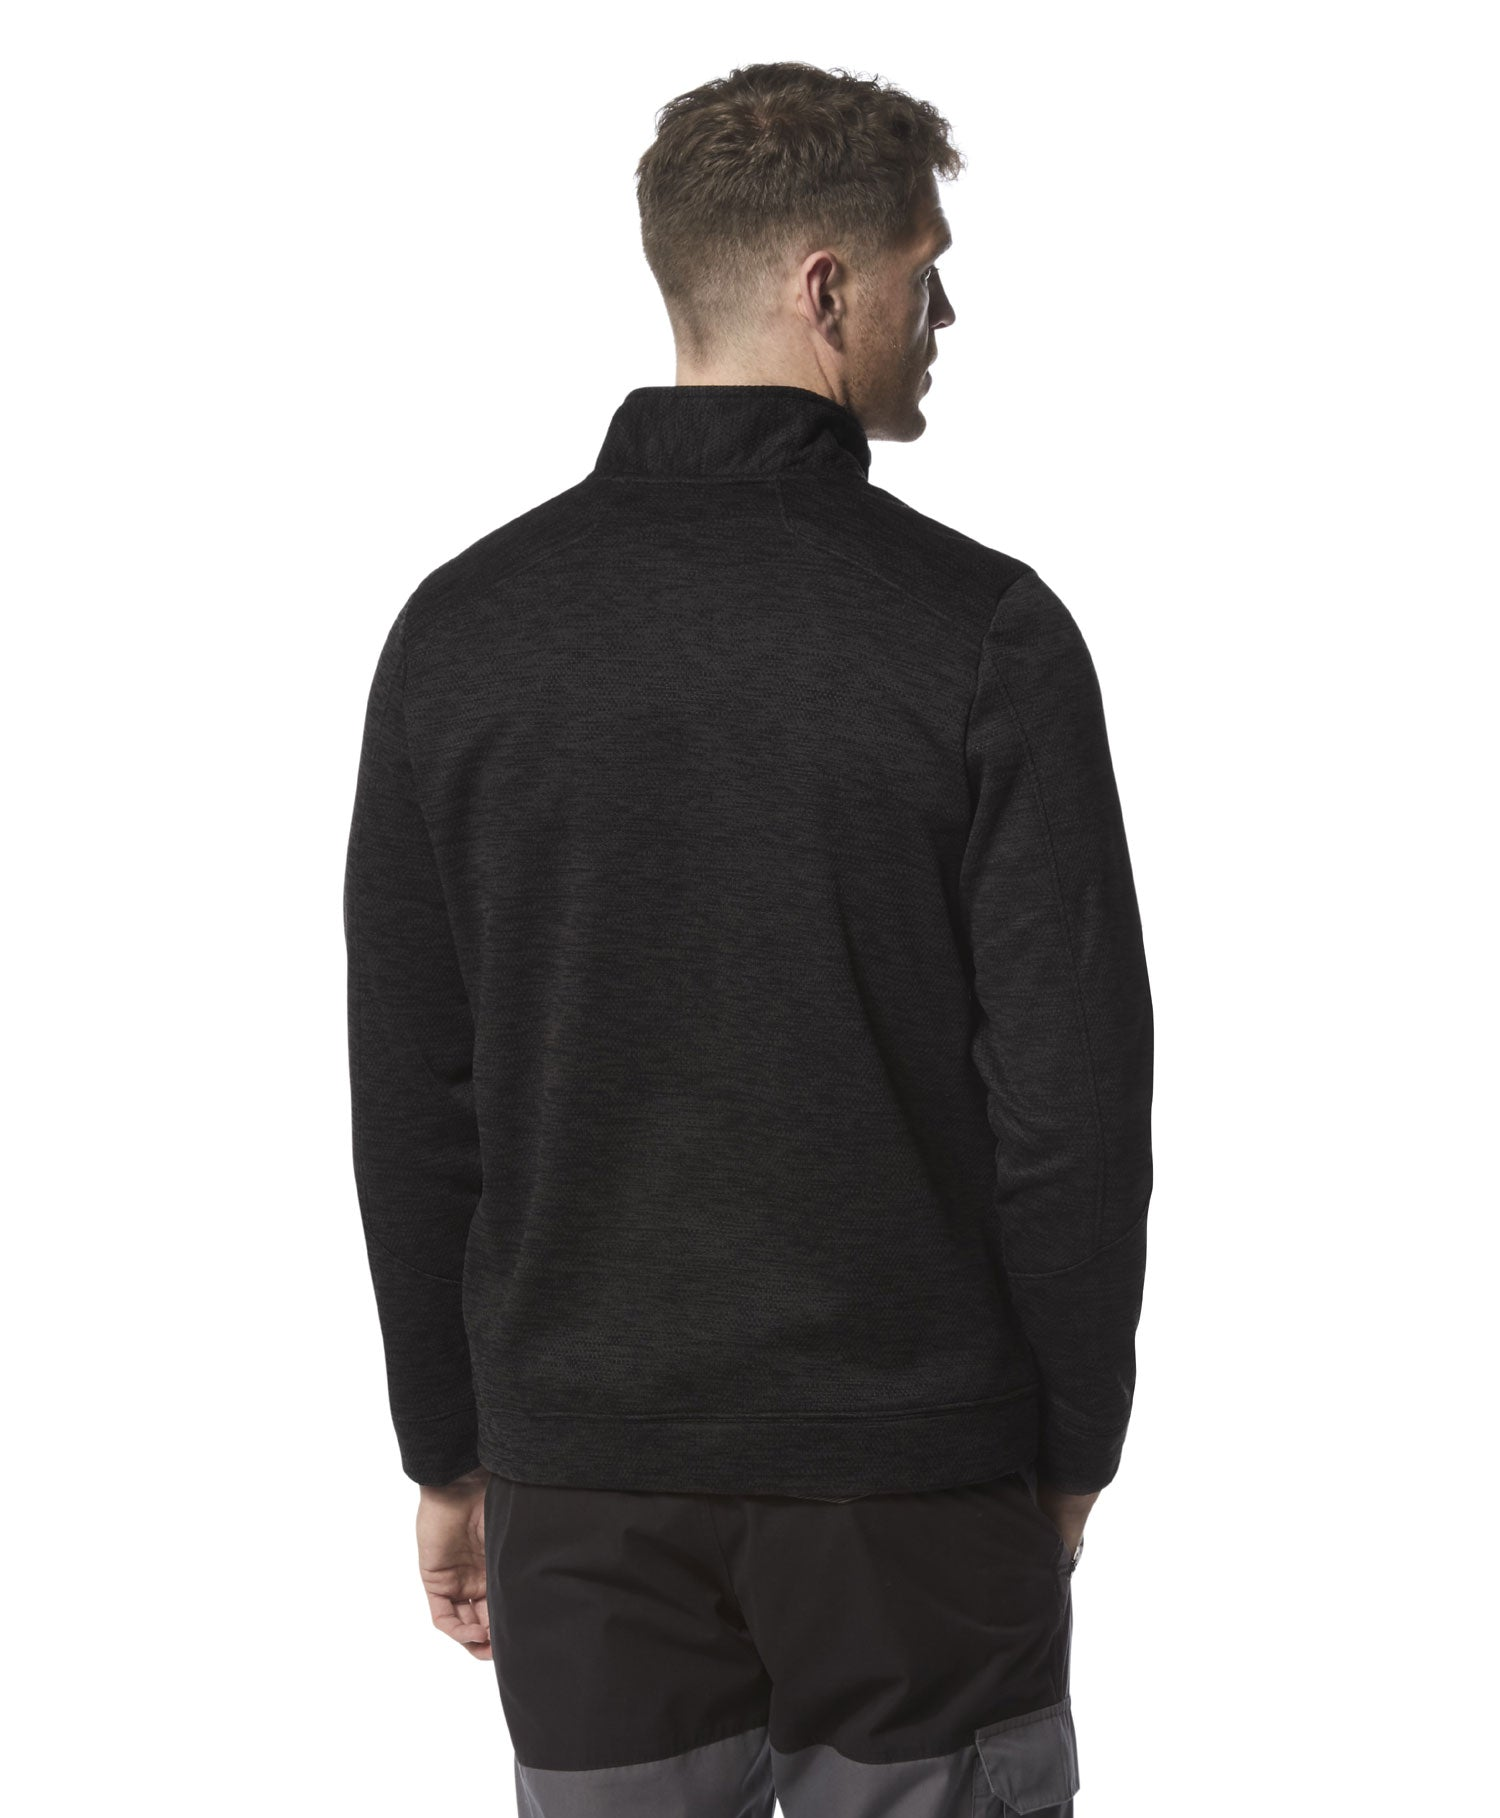 Back View Craghoppers Strata Half Zip Fleece